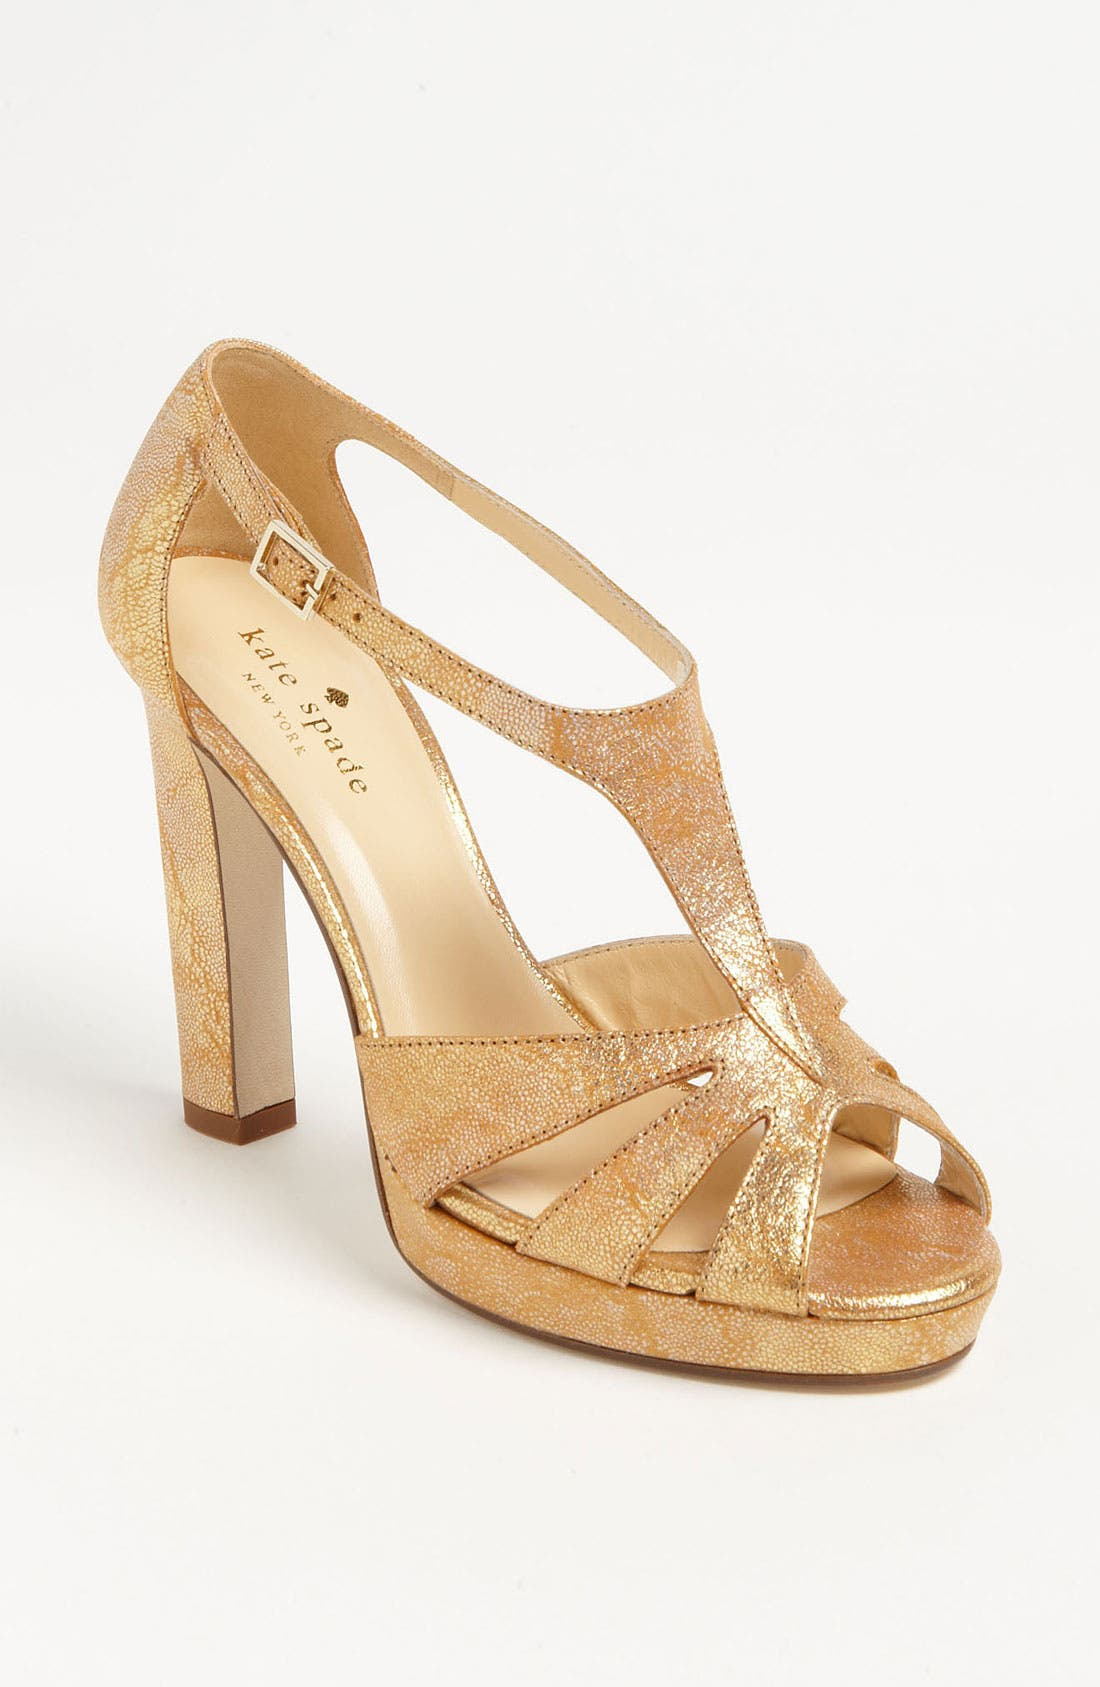 Alternate Image 1 Selected - kate spade new york 'ria' sandal